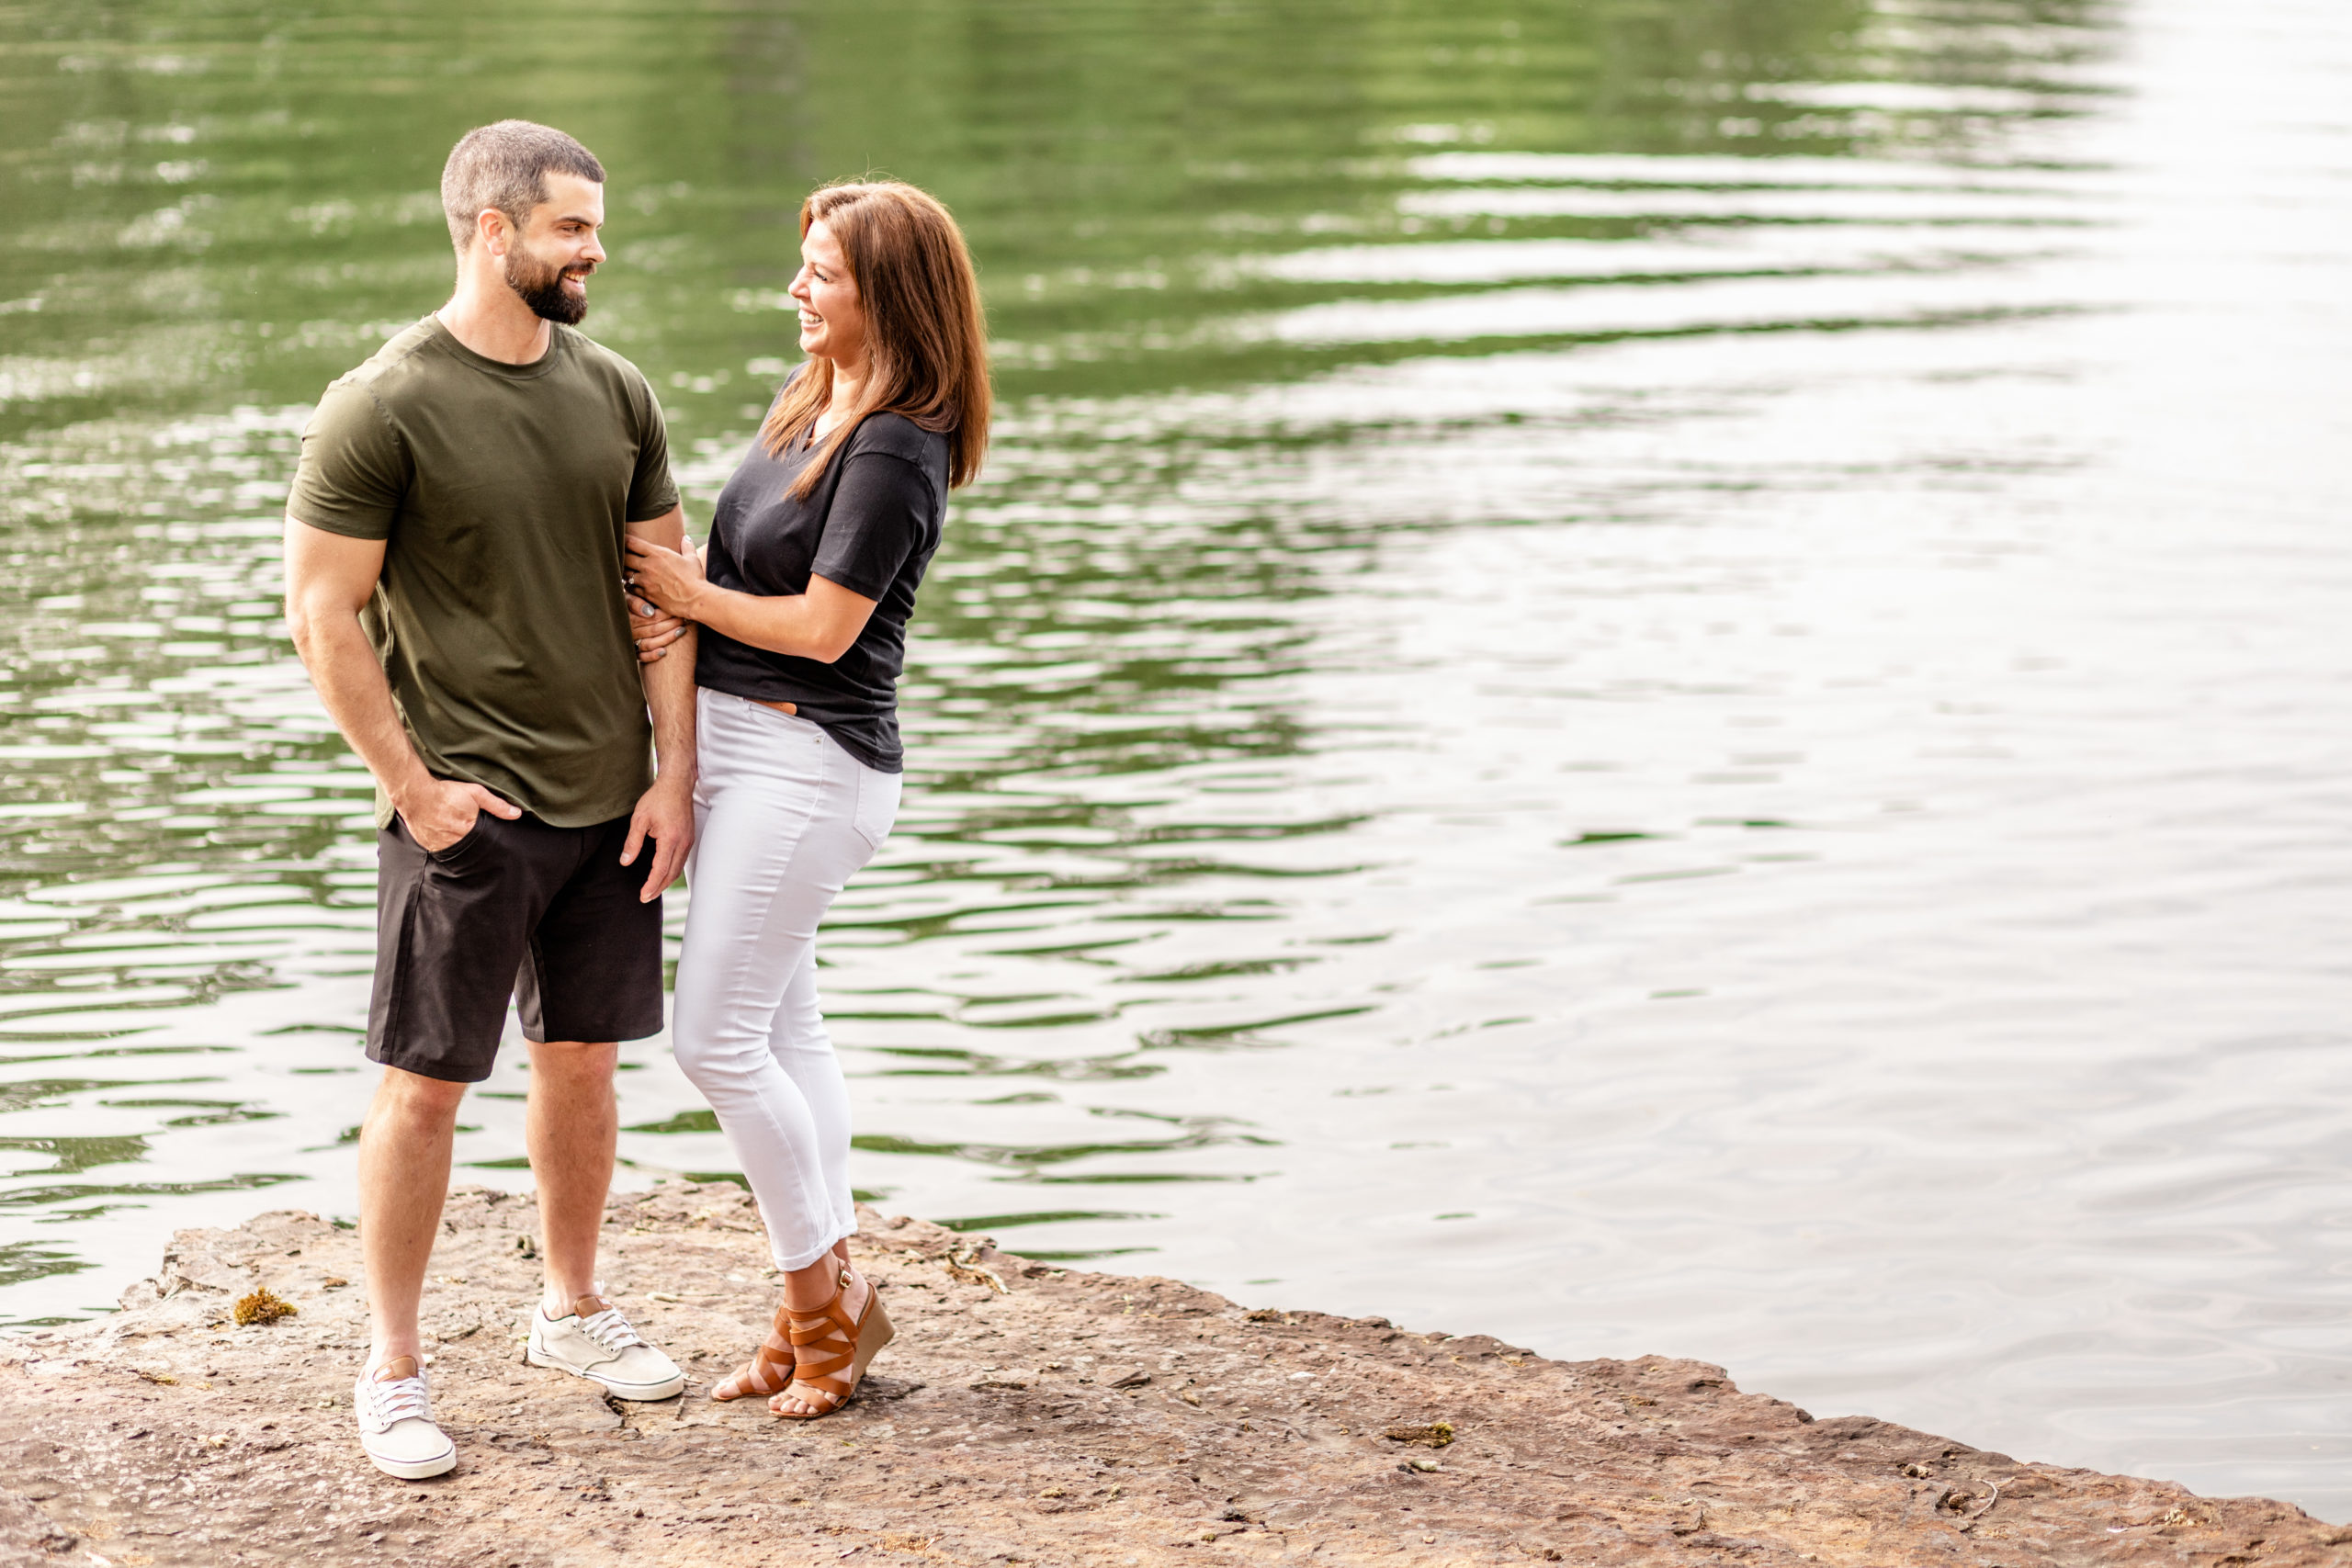 zach mcdearmon, meredith ashe, lake of egypt, M boutique, marion, marion illinois, engagement session, engaged couple, summer